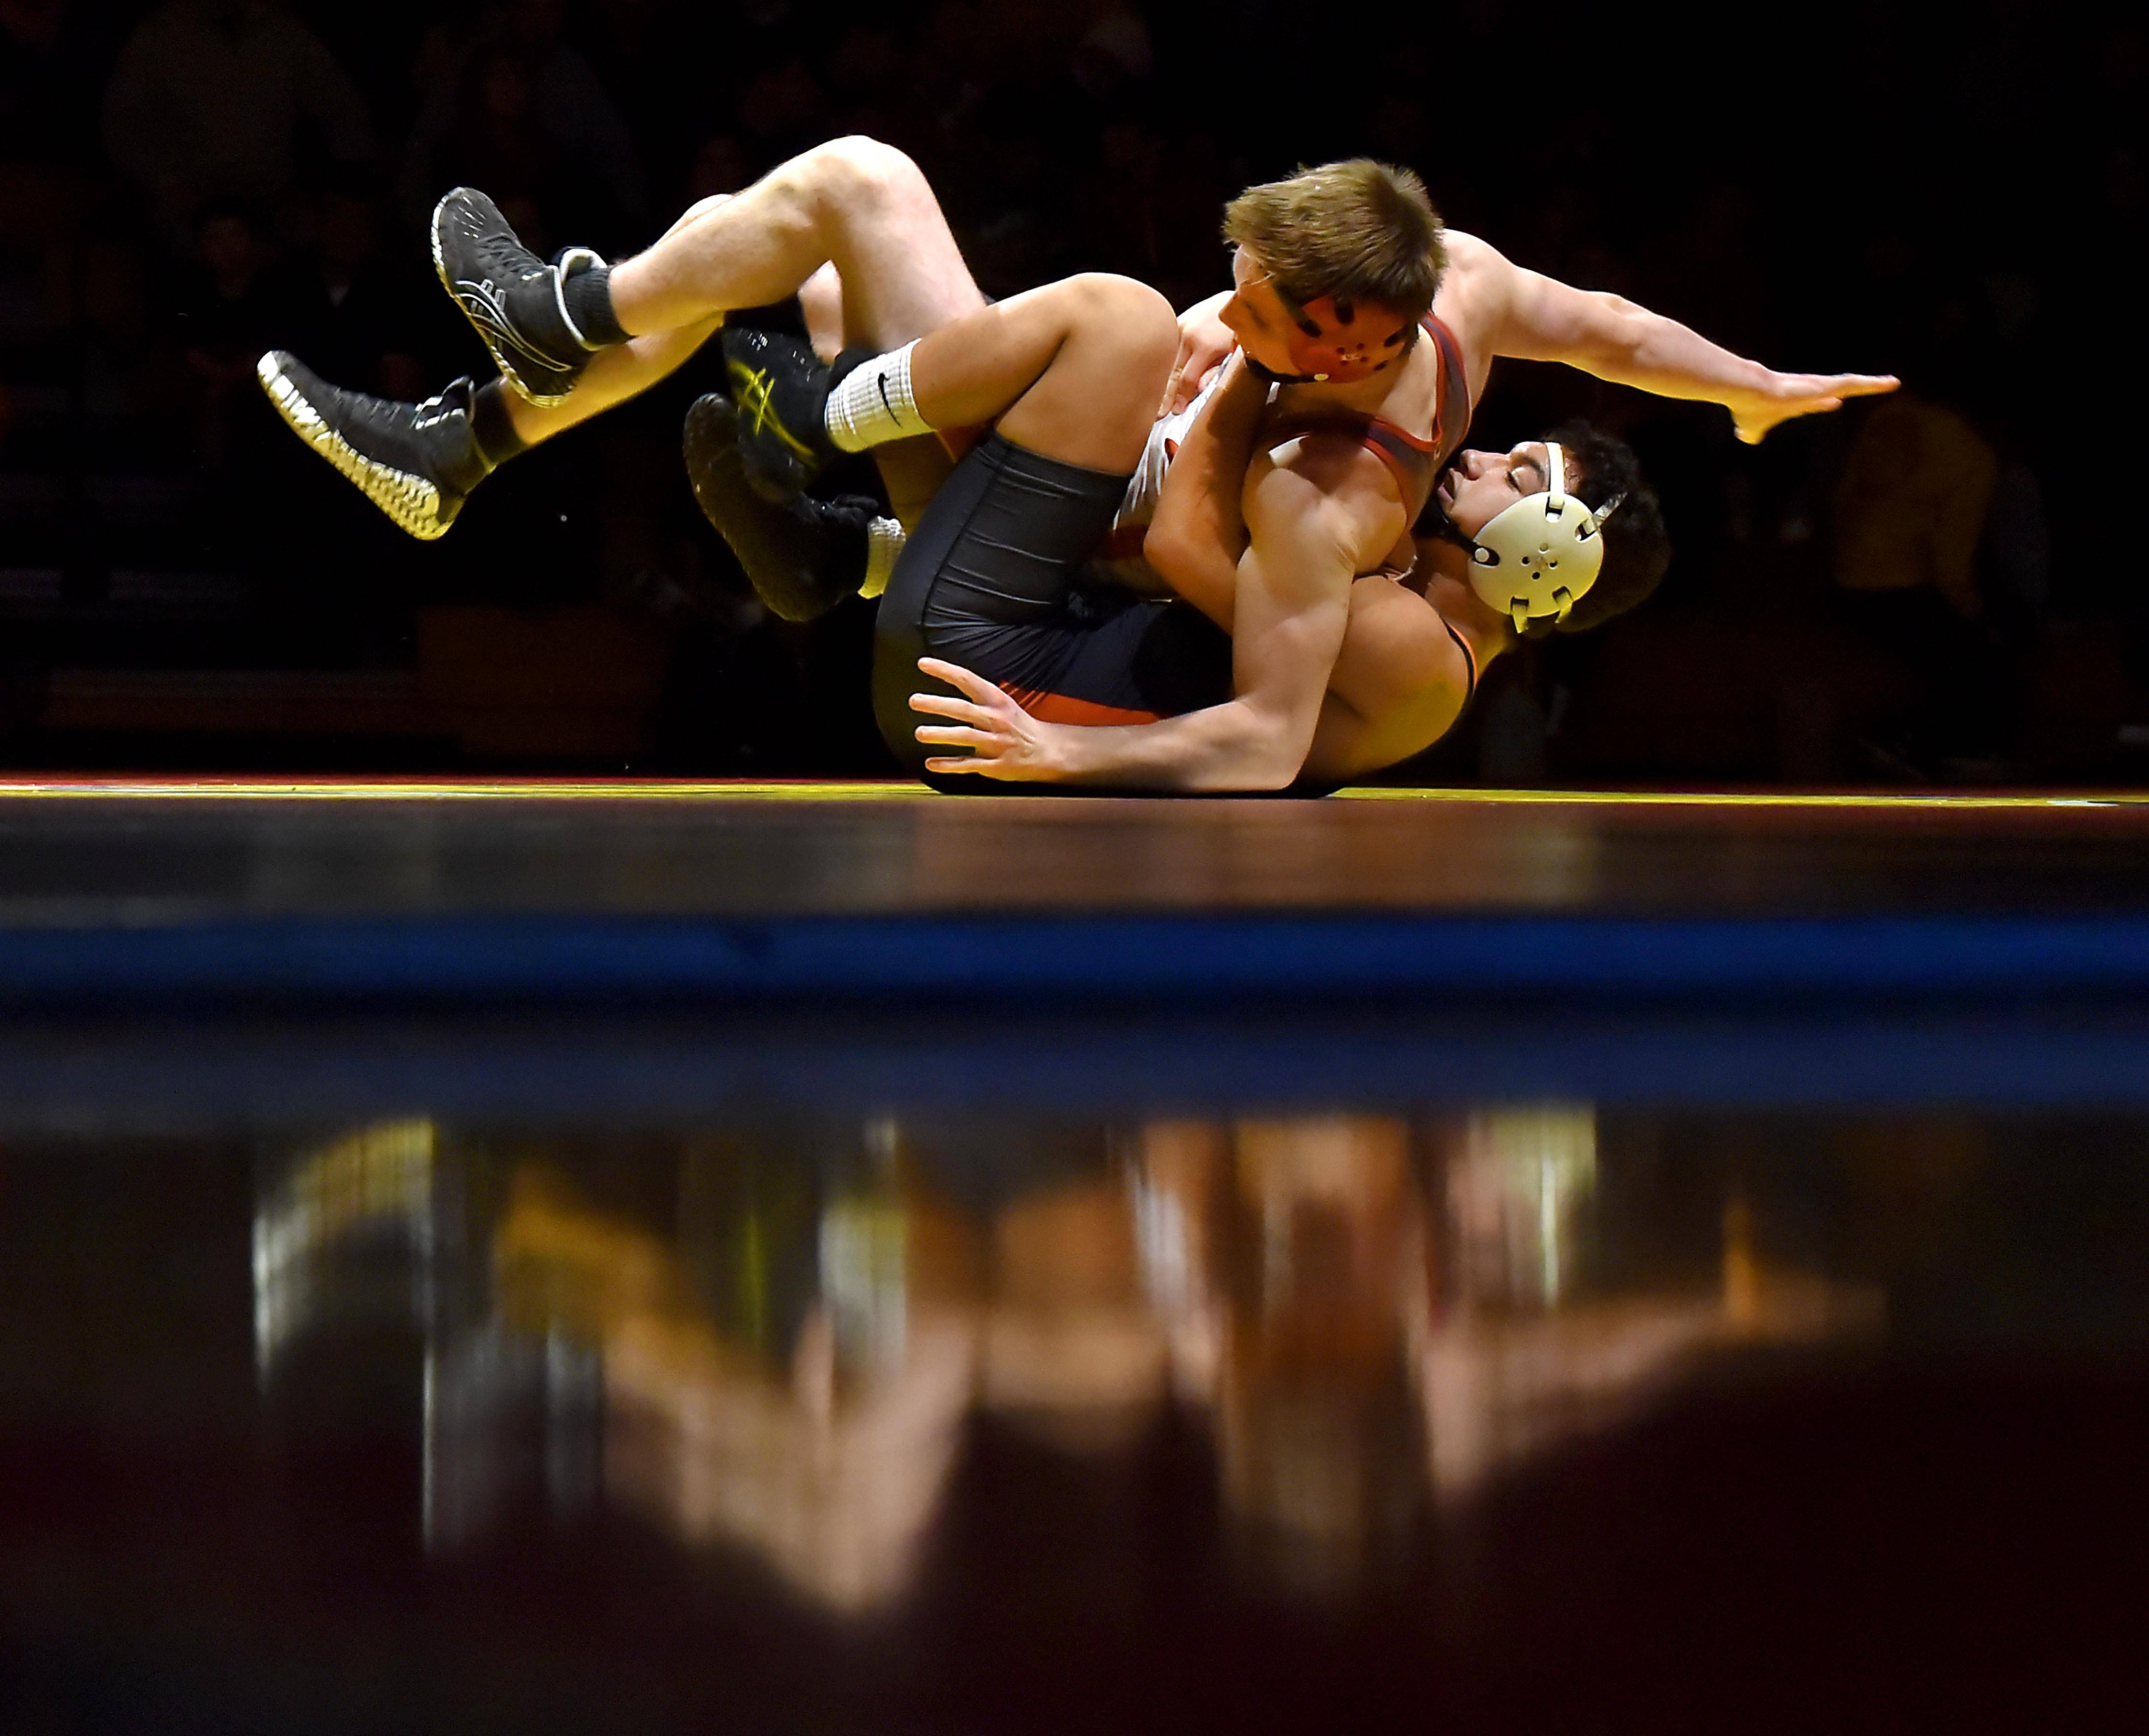 Reflected in the glossy gym floor, St. Charles East's Charles Falka rolls back with Batavia's Andy Posledni in his grasp in their 145-pound match Thursday in a wrestling match in Batavia.